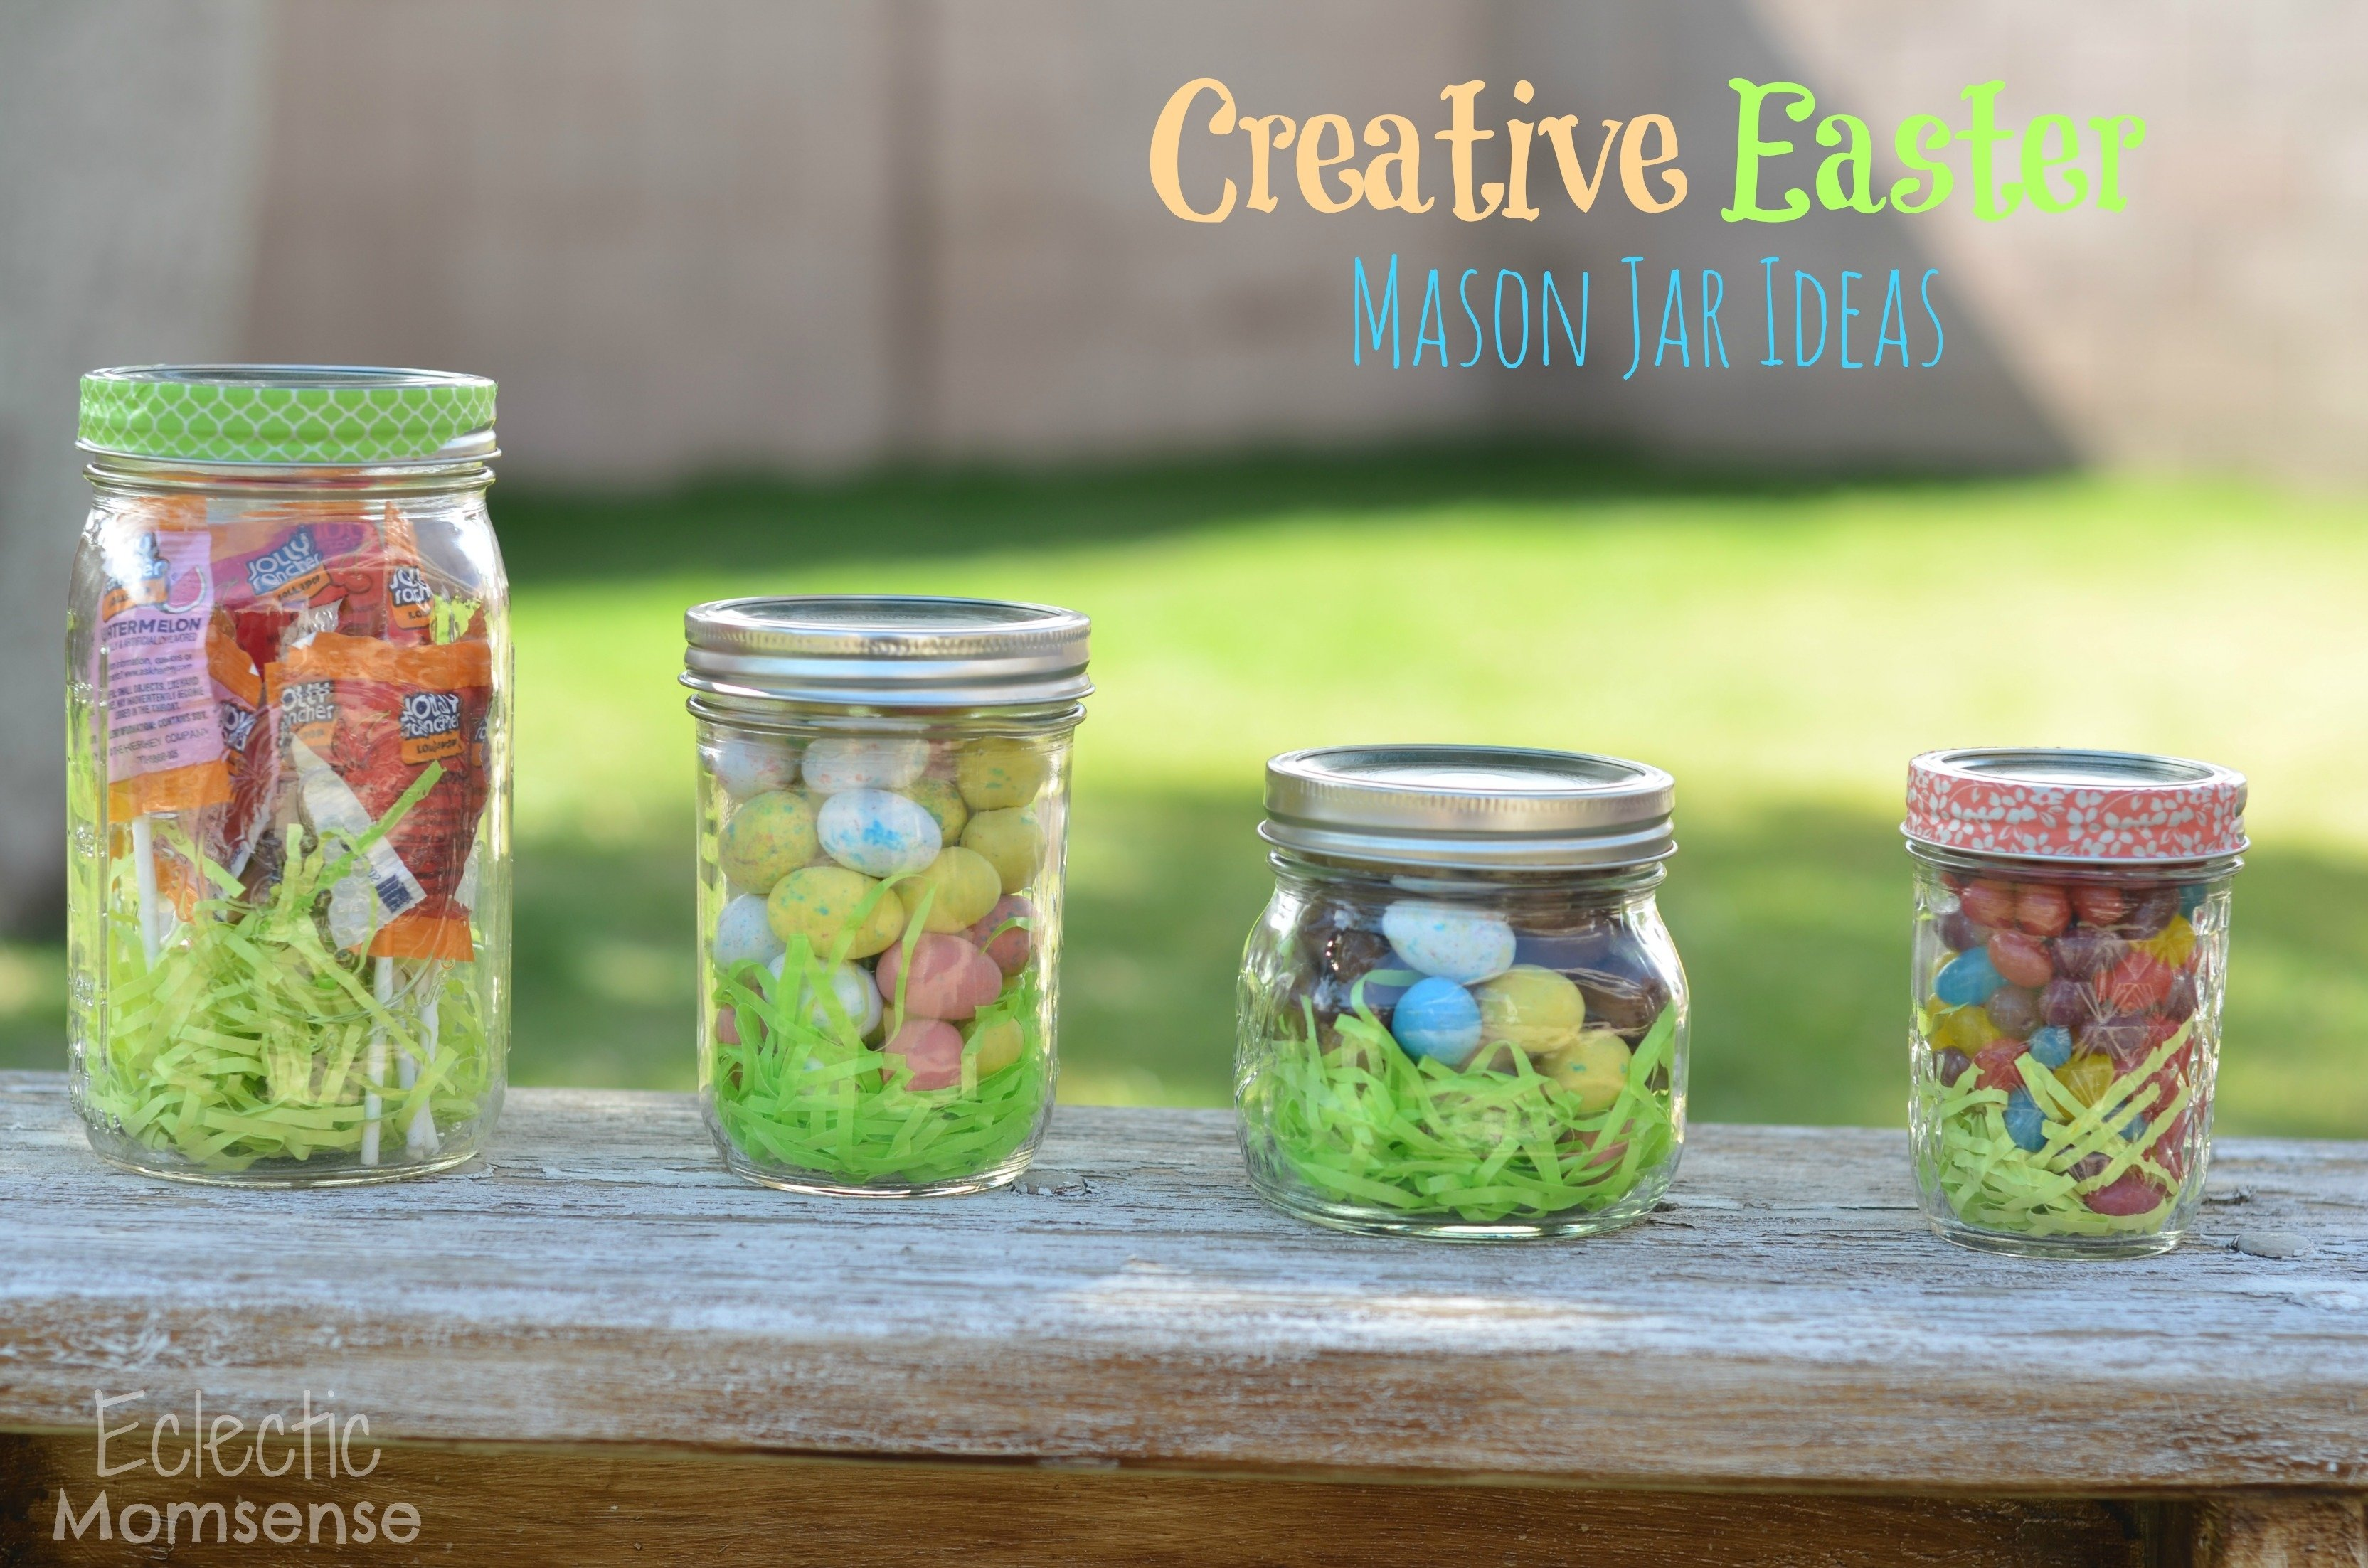 creative easter mason jar ideas & a giveaway - eclectic momsense